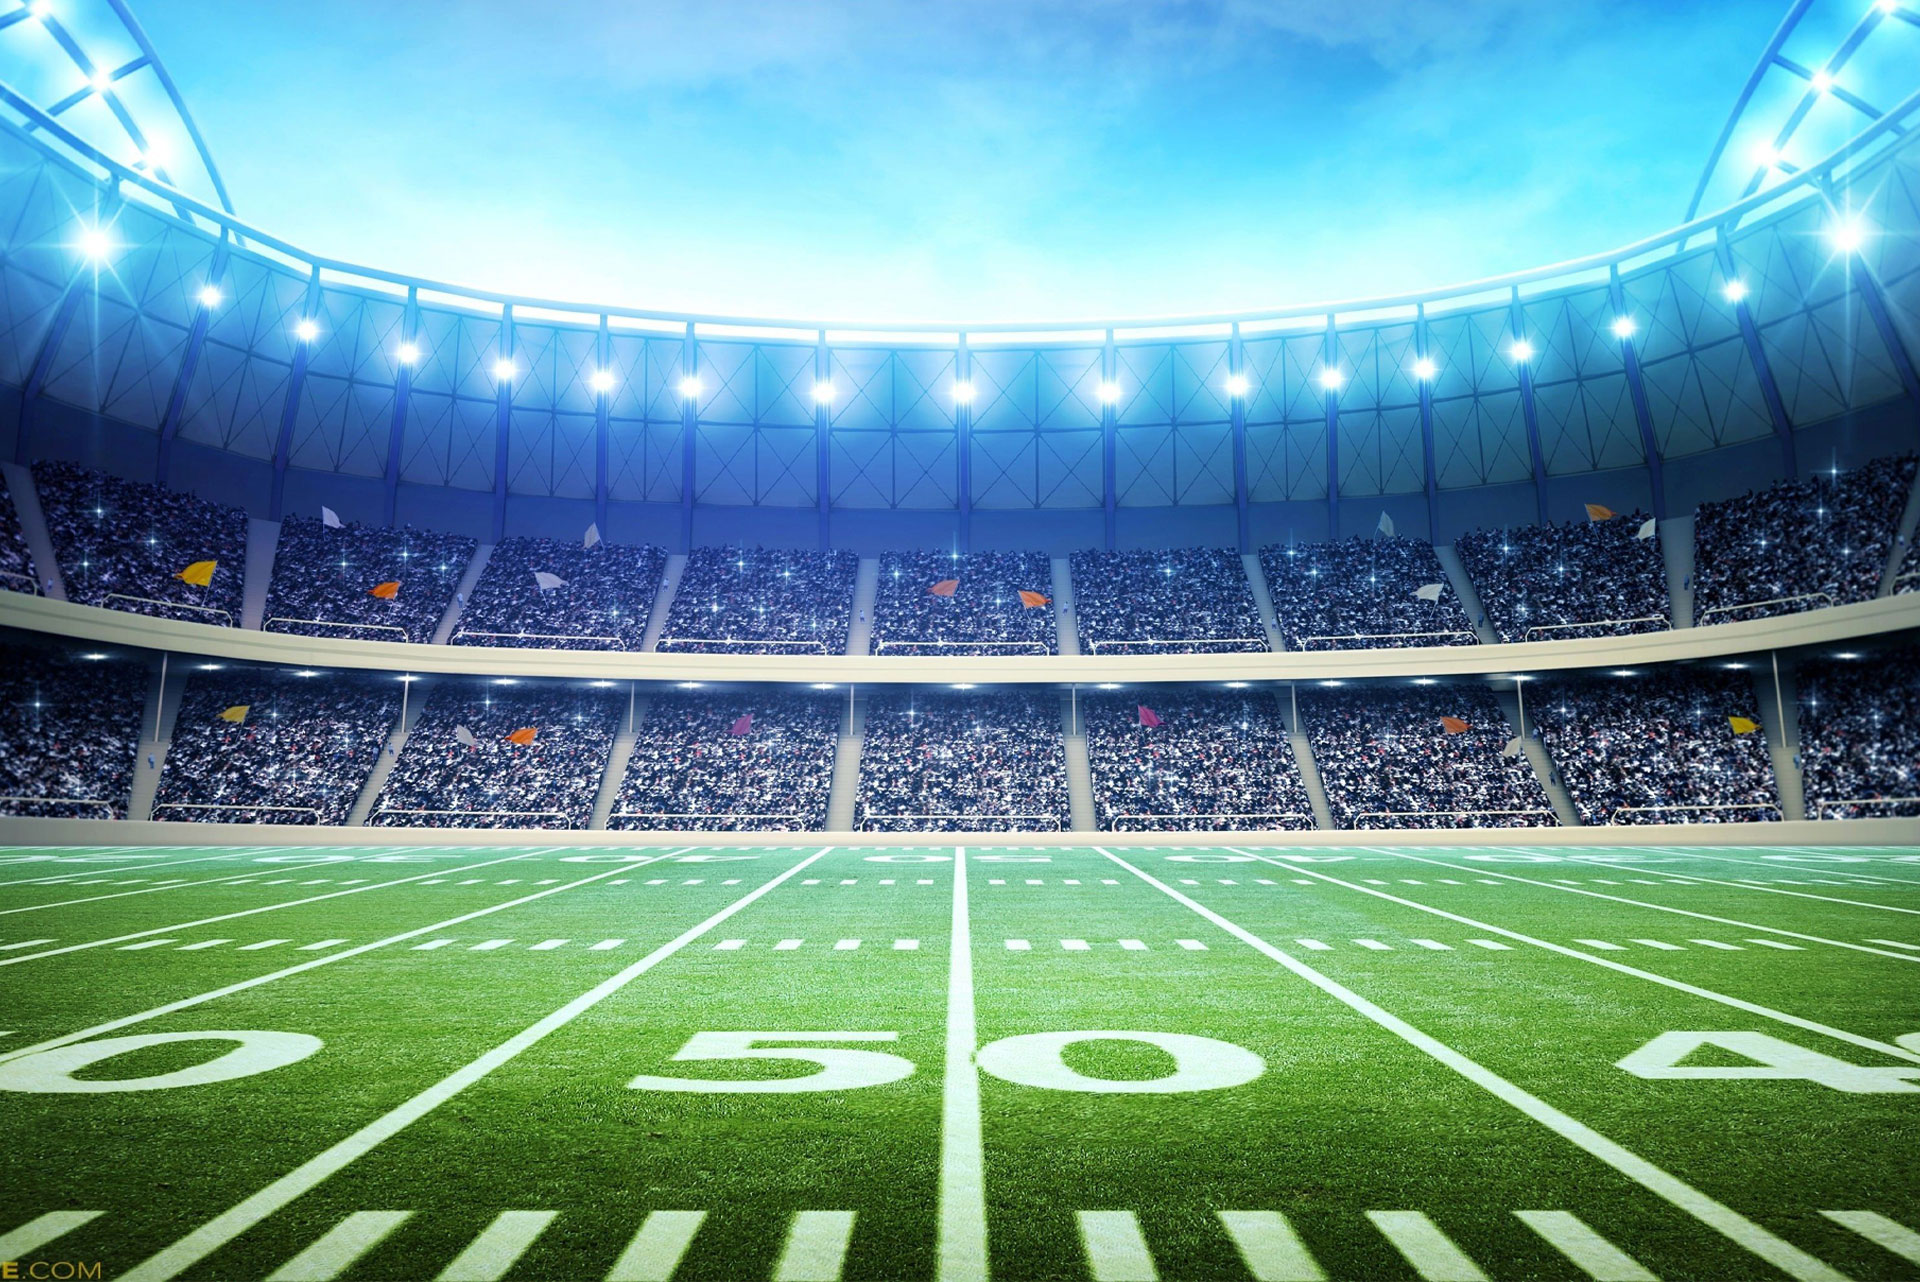 Image of a football field